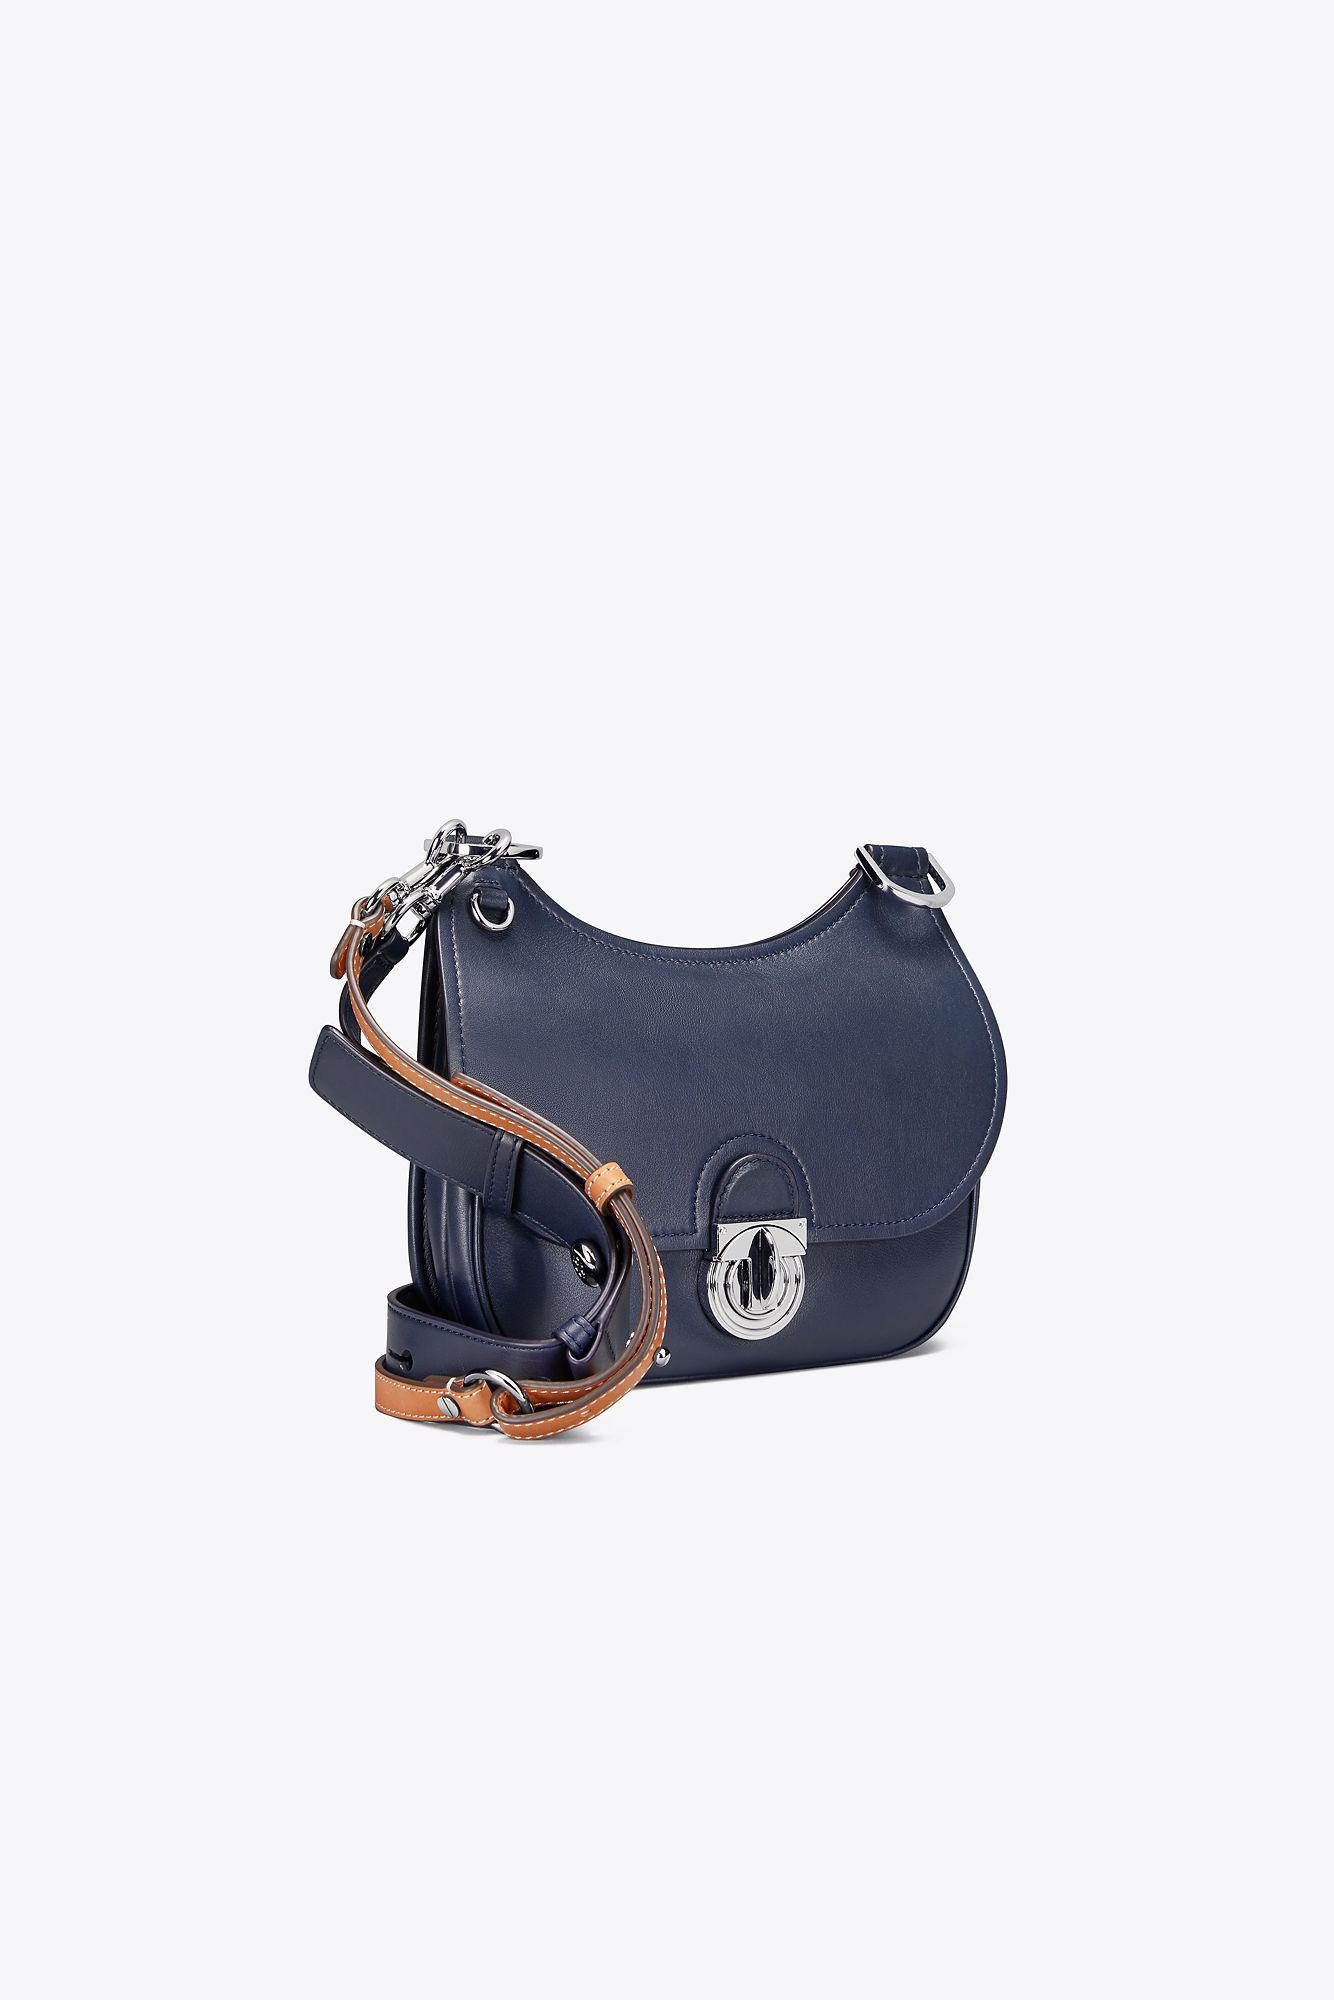 876a9287c7c5 Lyst - Tory Burch James Small Saddlebag in Blue